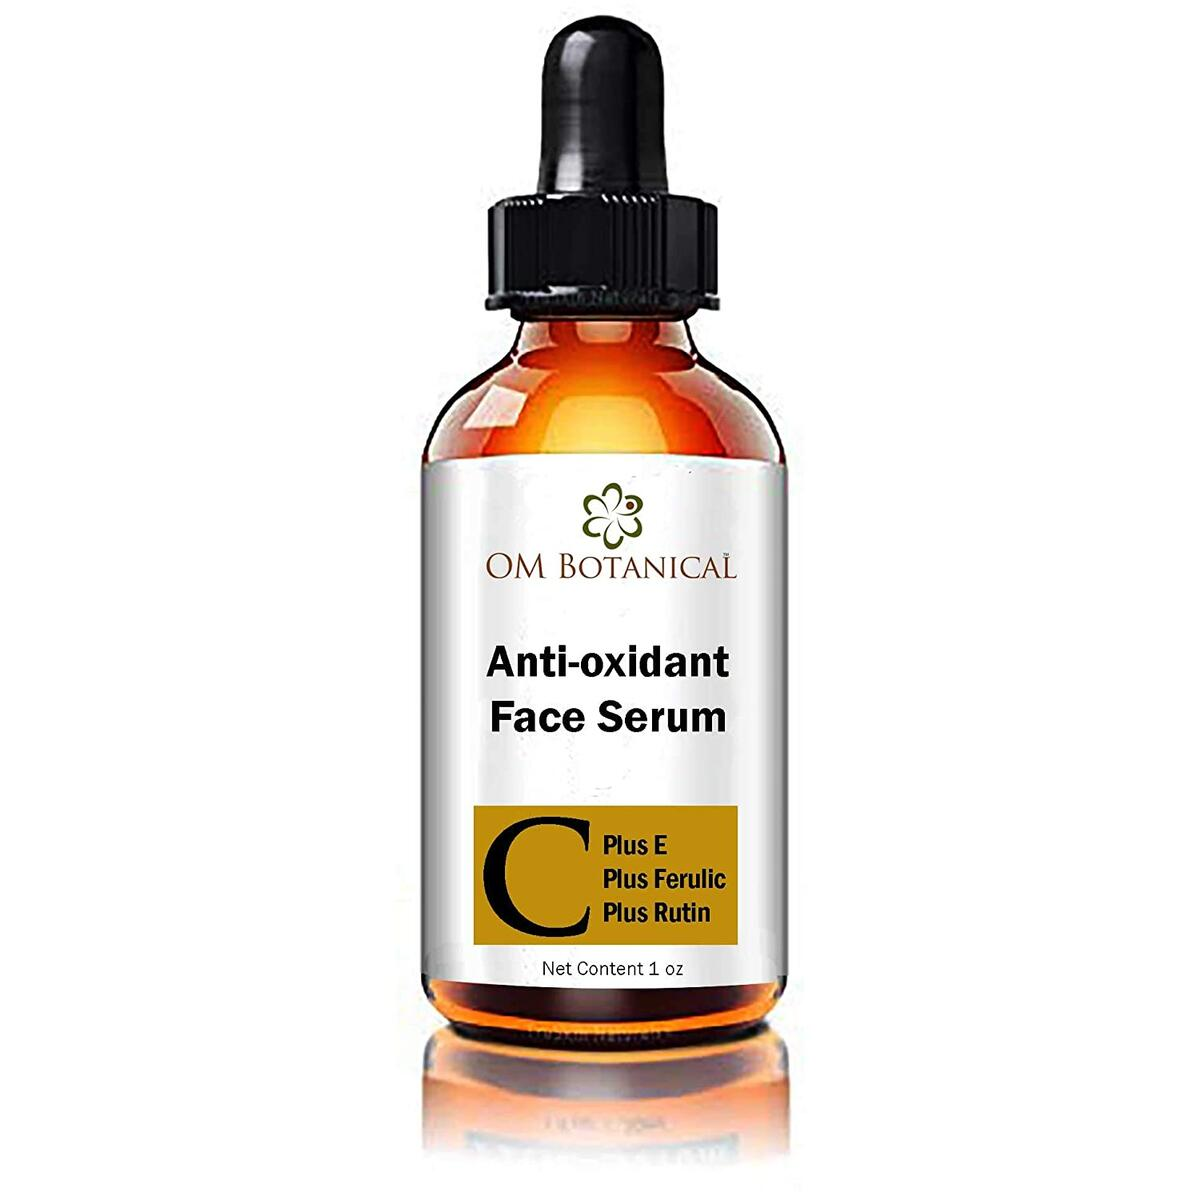 Antioxidant Vitamin C Face Serum Combined with Vitamin E, Ferulic Acid and Rutin | Power of Four is Better Than One. Making This The Most Effective Collagen Boosting Facial Serum on Amazon